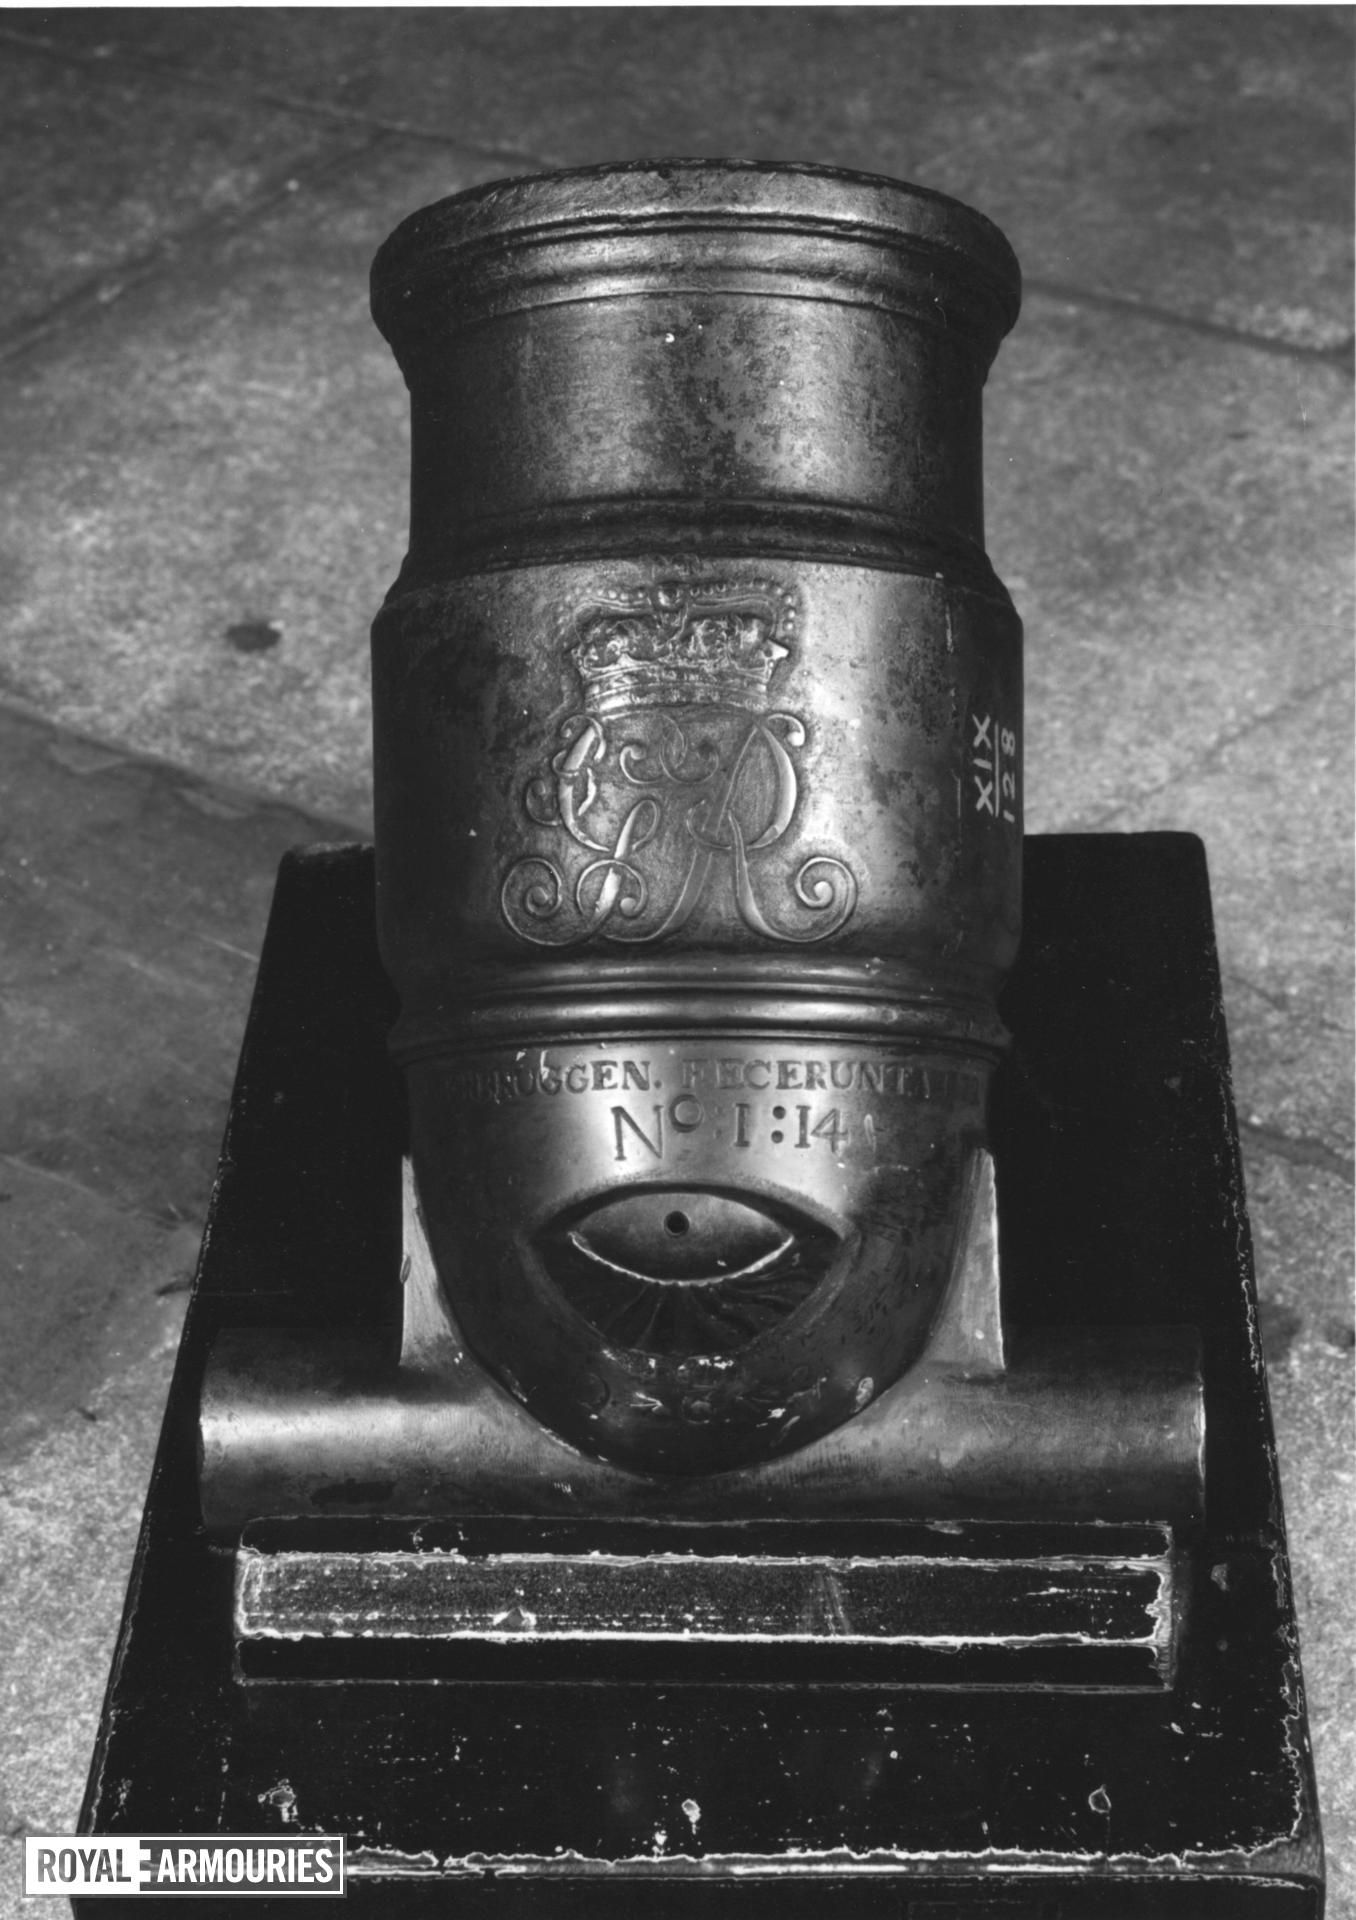 4.4 in mortar - Coehorn mortar